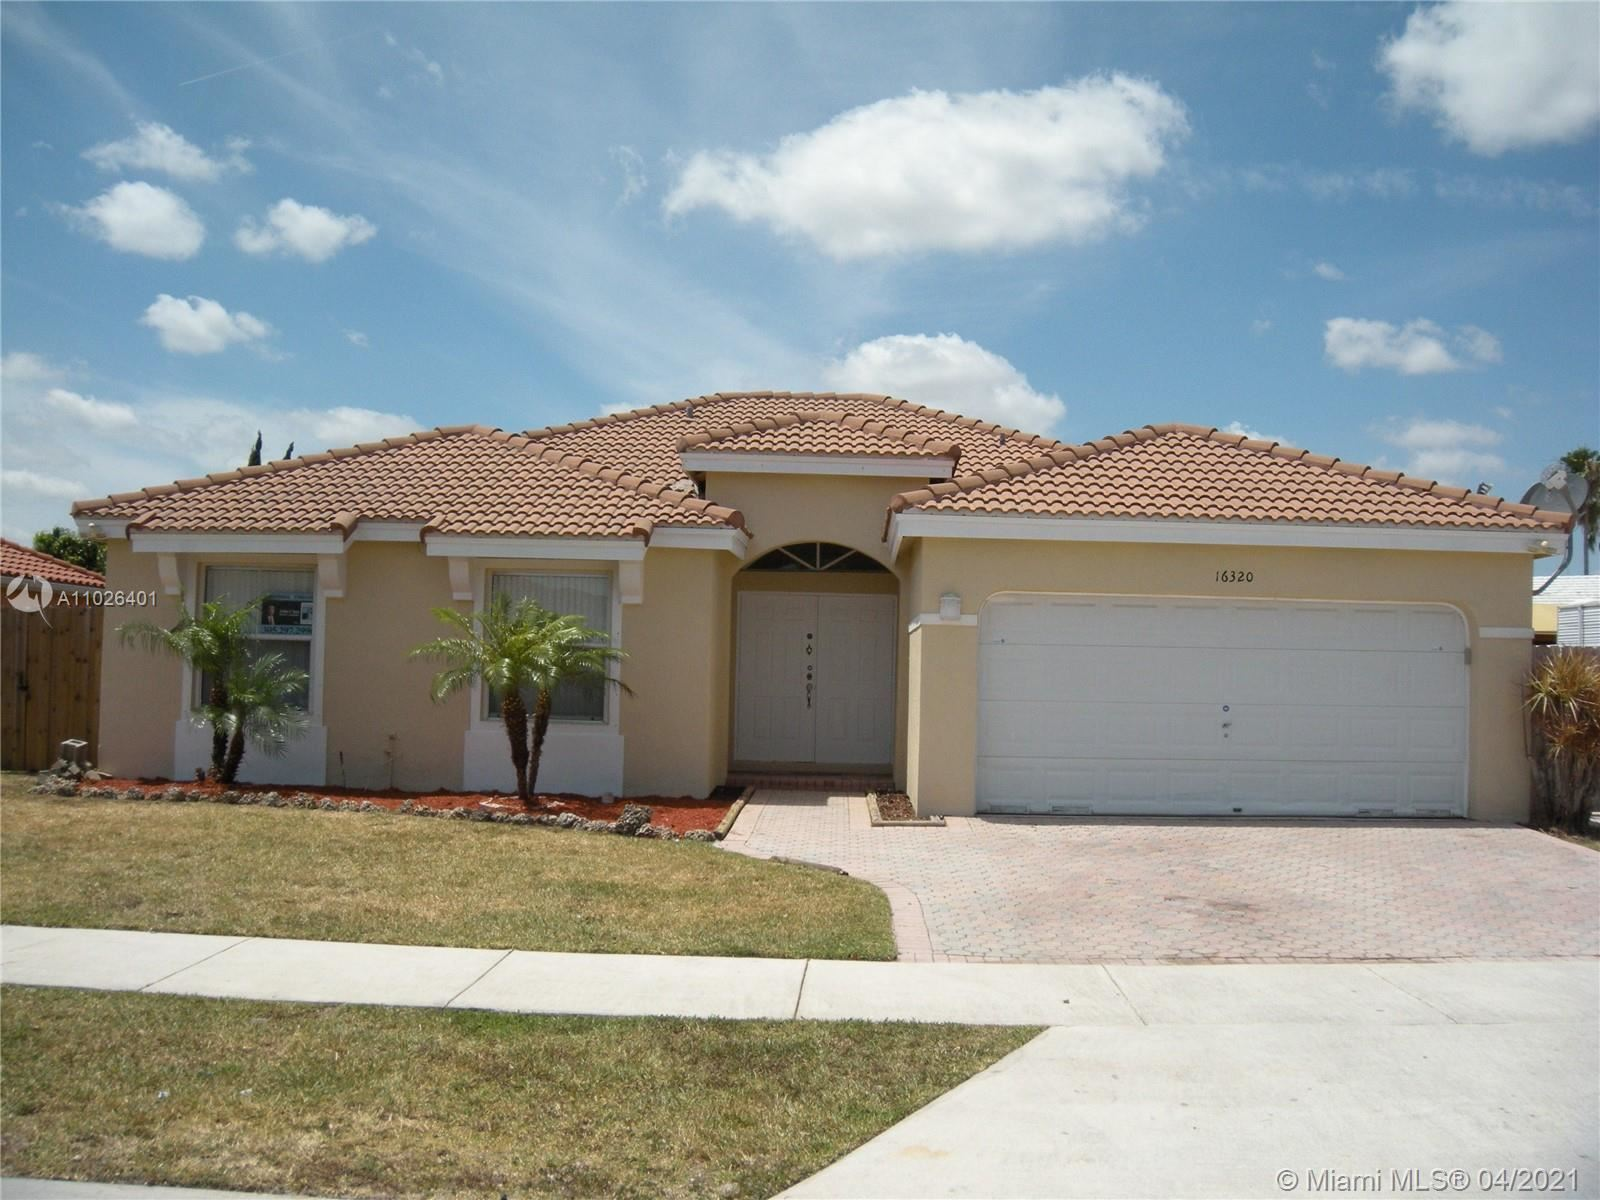 16320 SW 144th Ave, Miami, FL 33177 - #: A11026401